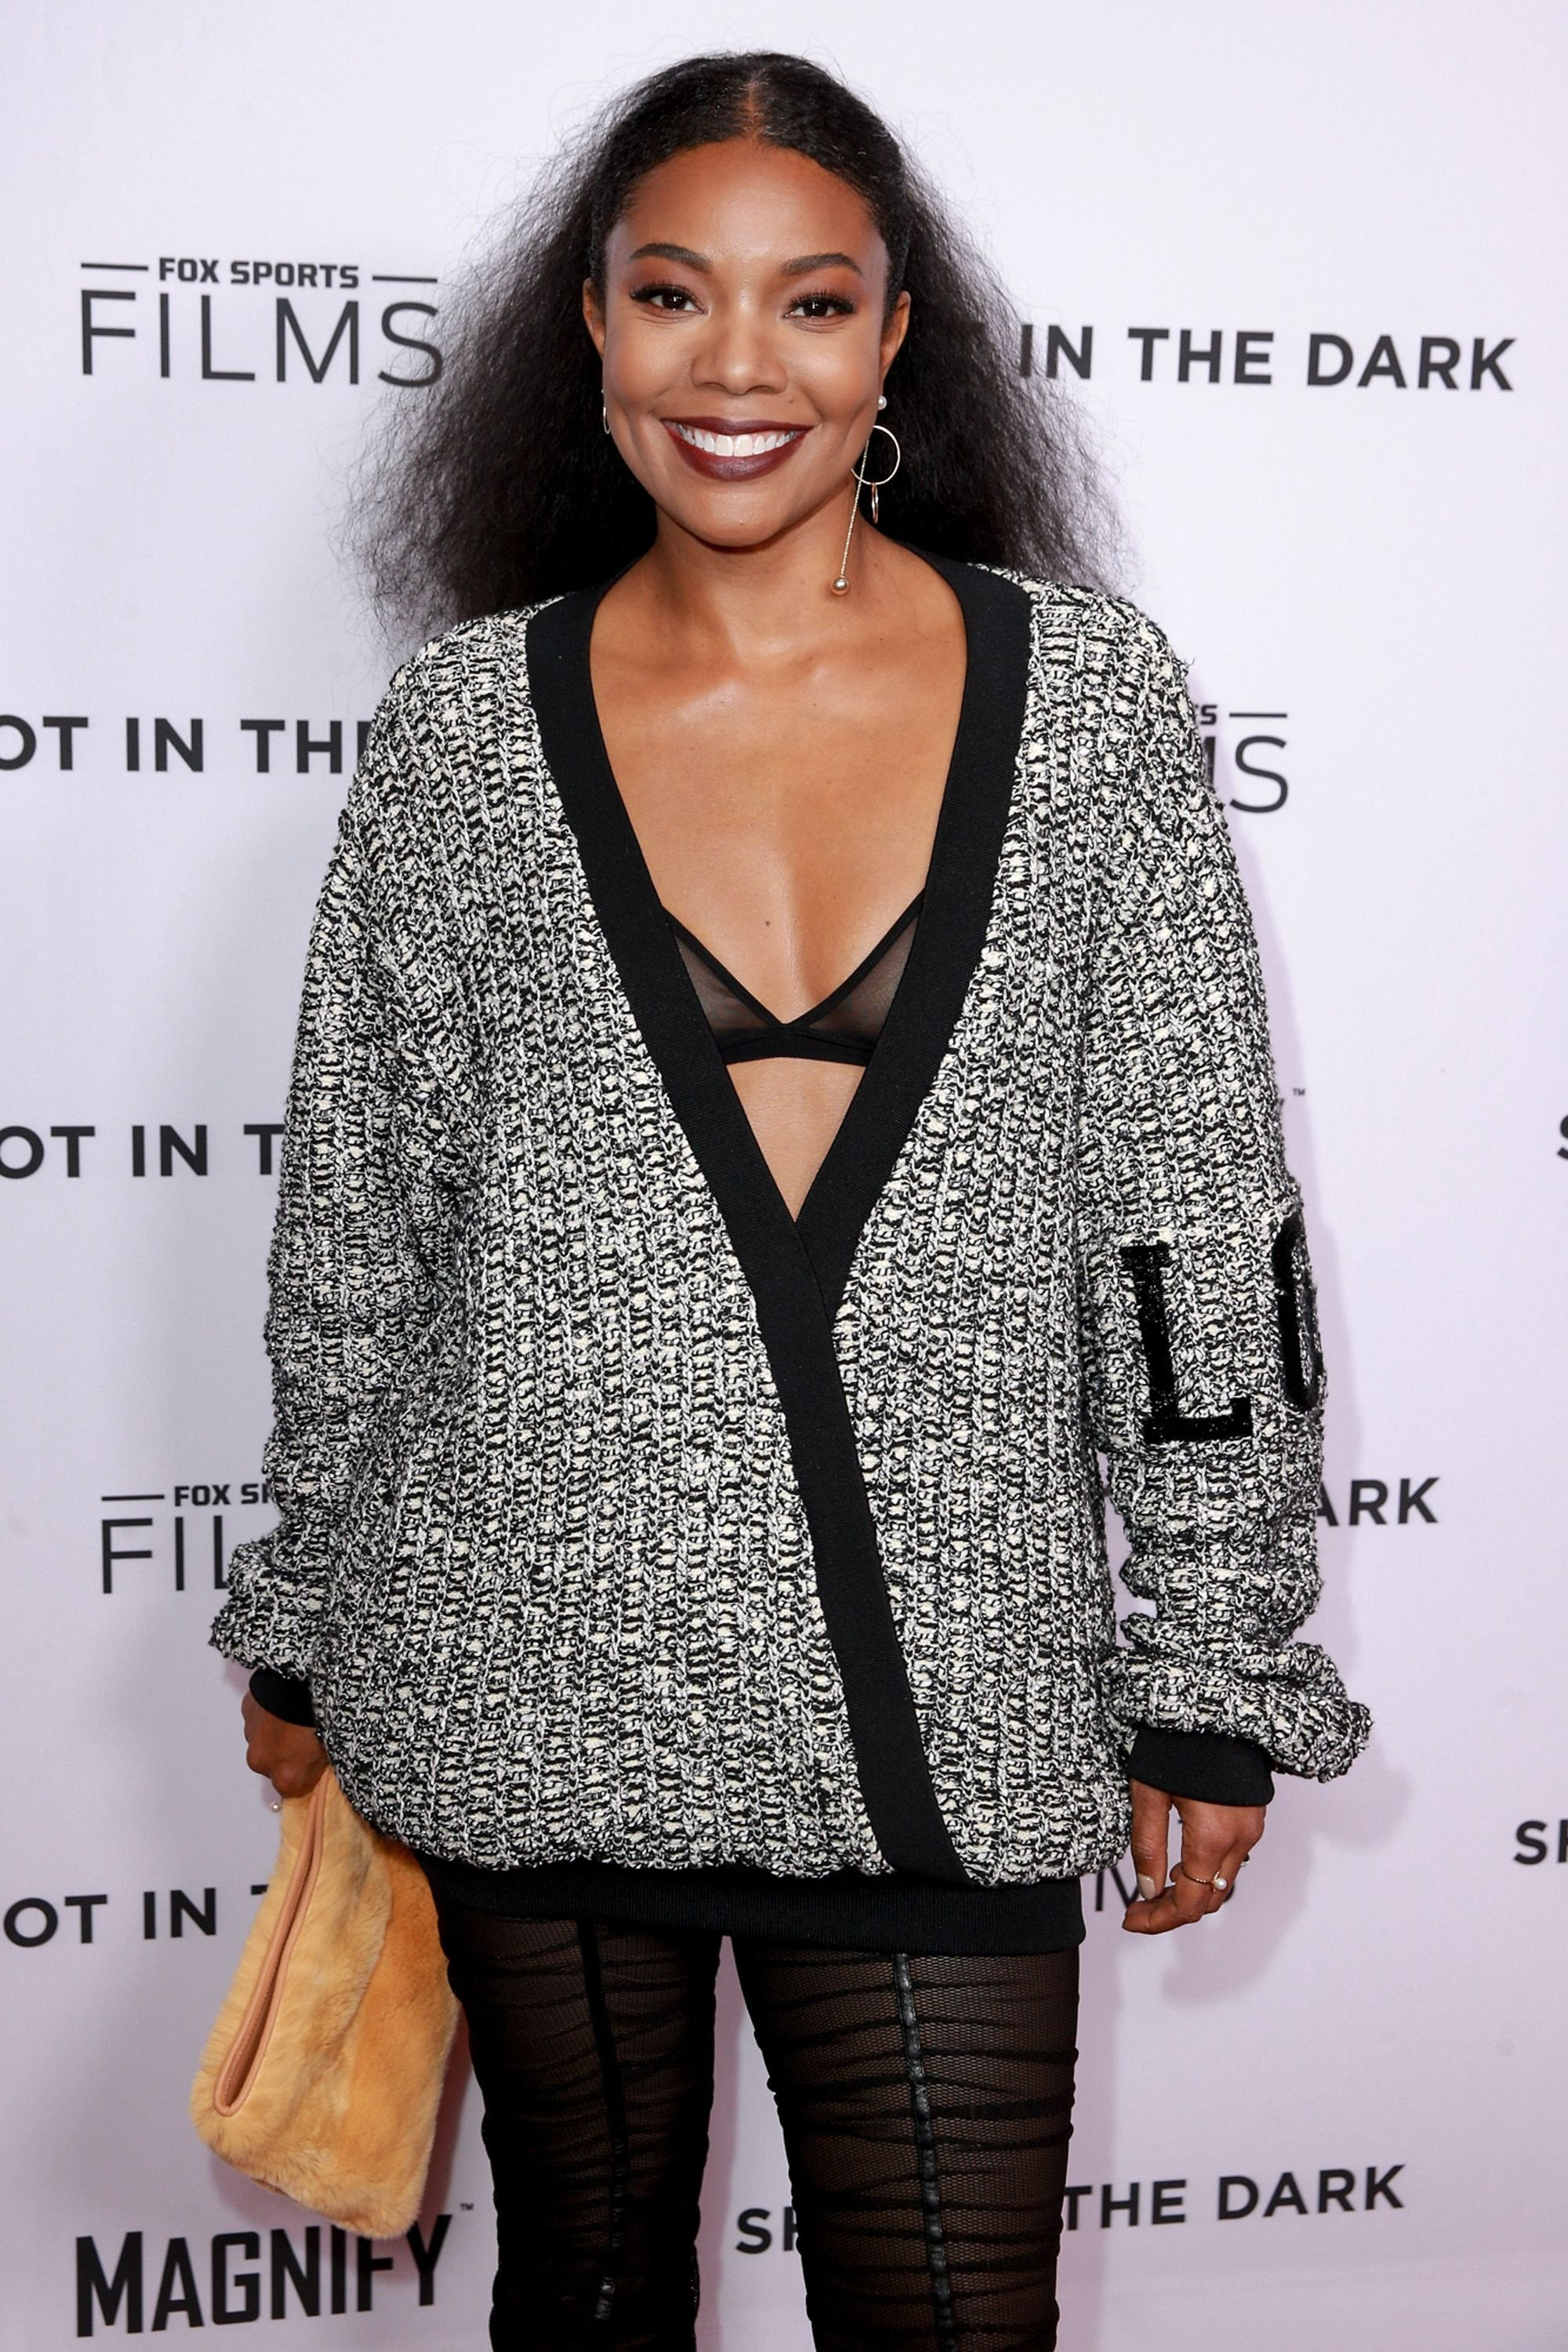 """Gabrielle Union during Magnify and Fox Sports Films' """"Shot In The Dark"""" documentary premiere screening and panel discussion at Pacific Design Center on February 15, 2018 in West Hollywood, California. 